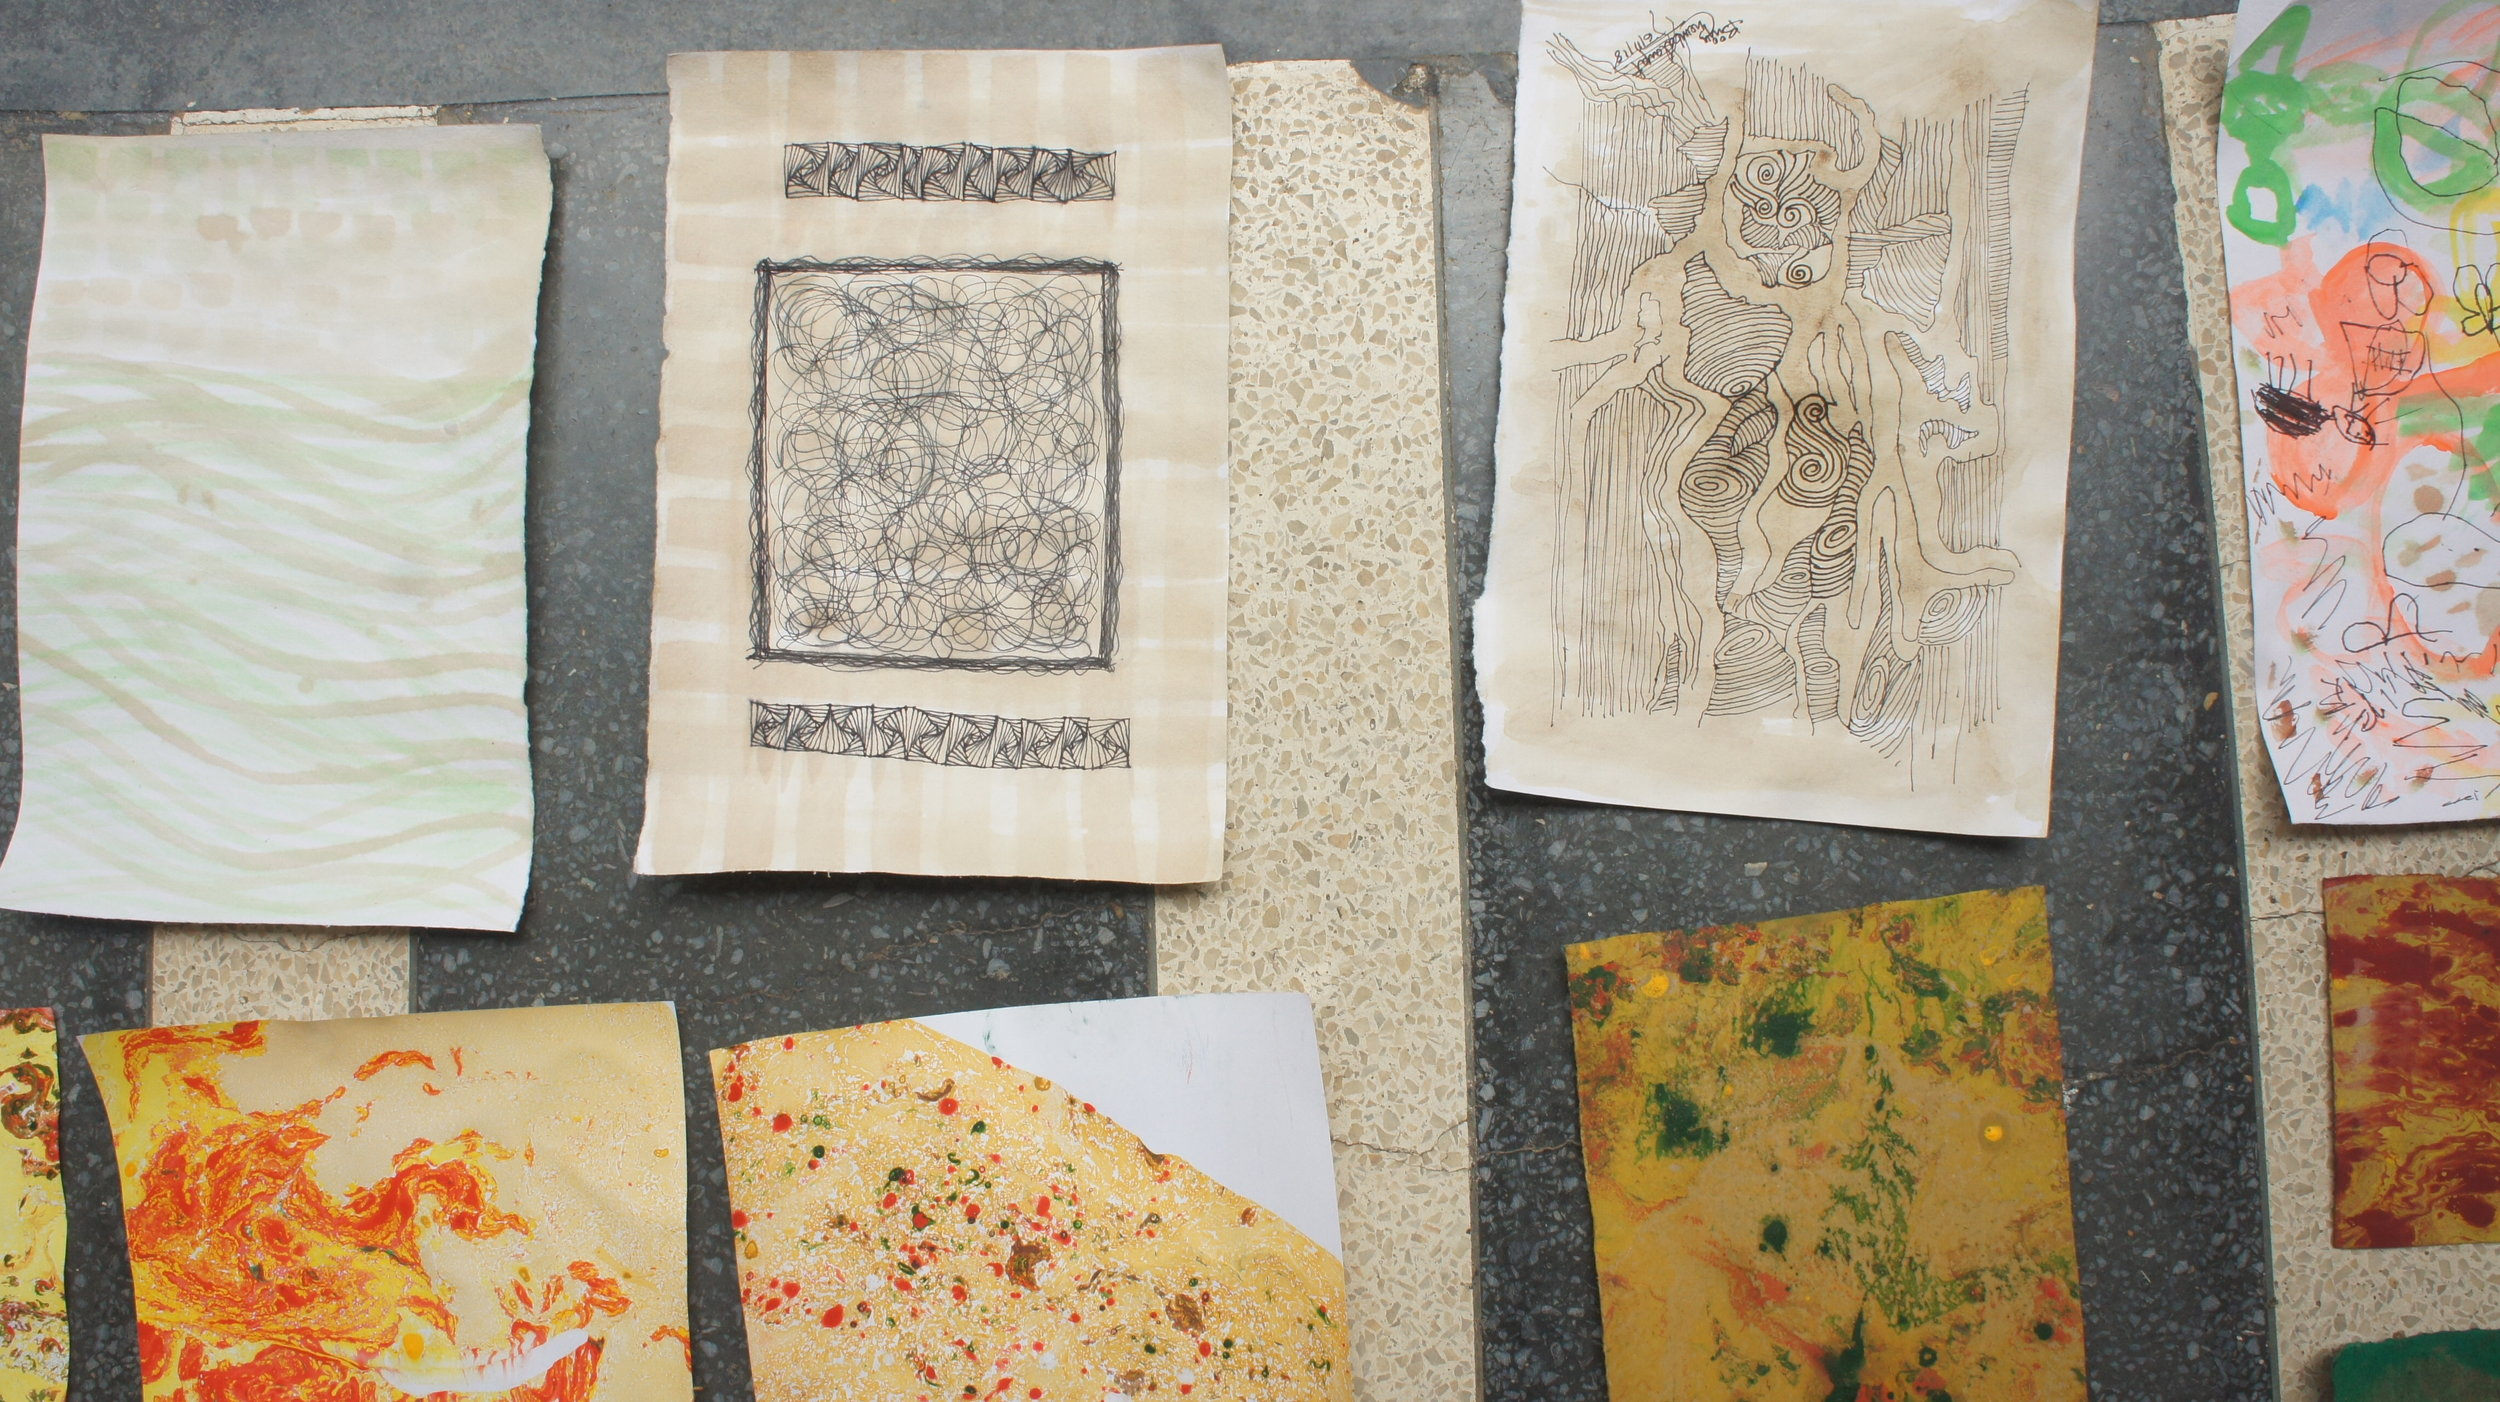 Wash and Marbling - What an exciting way to spend the weekend!